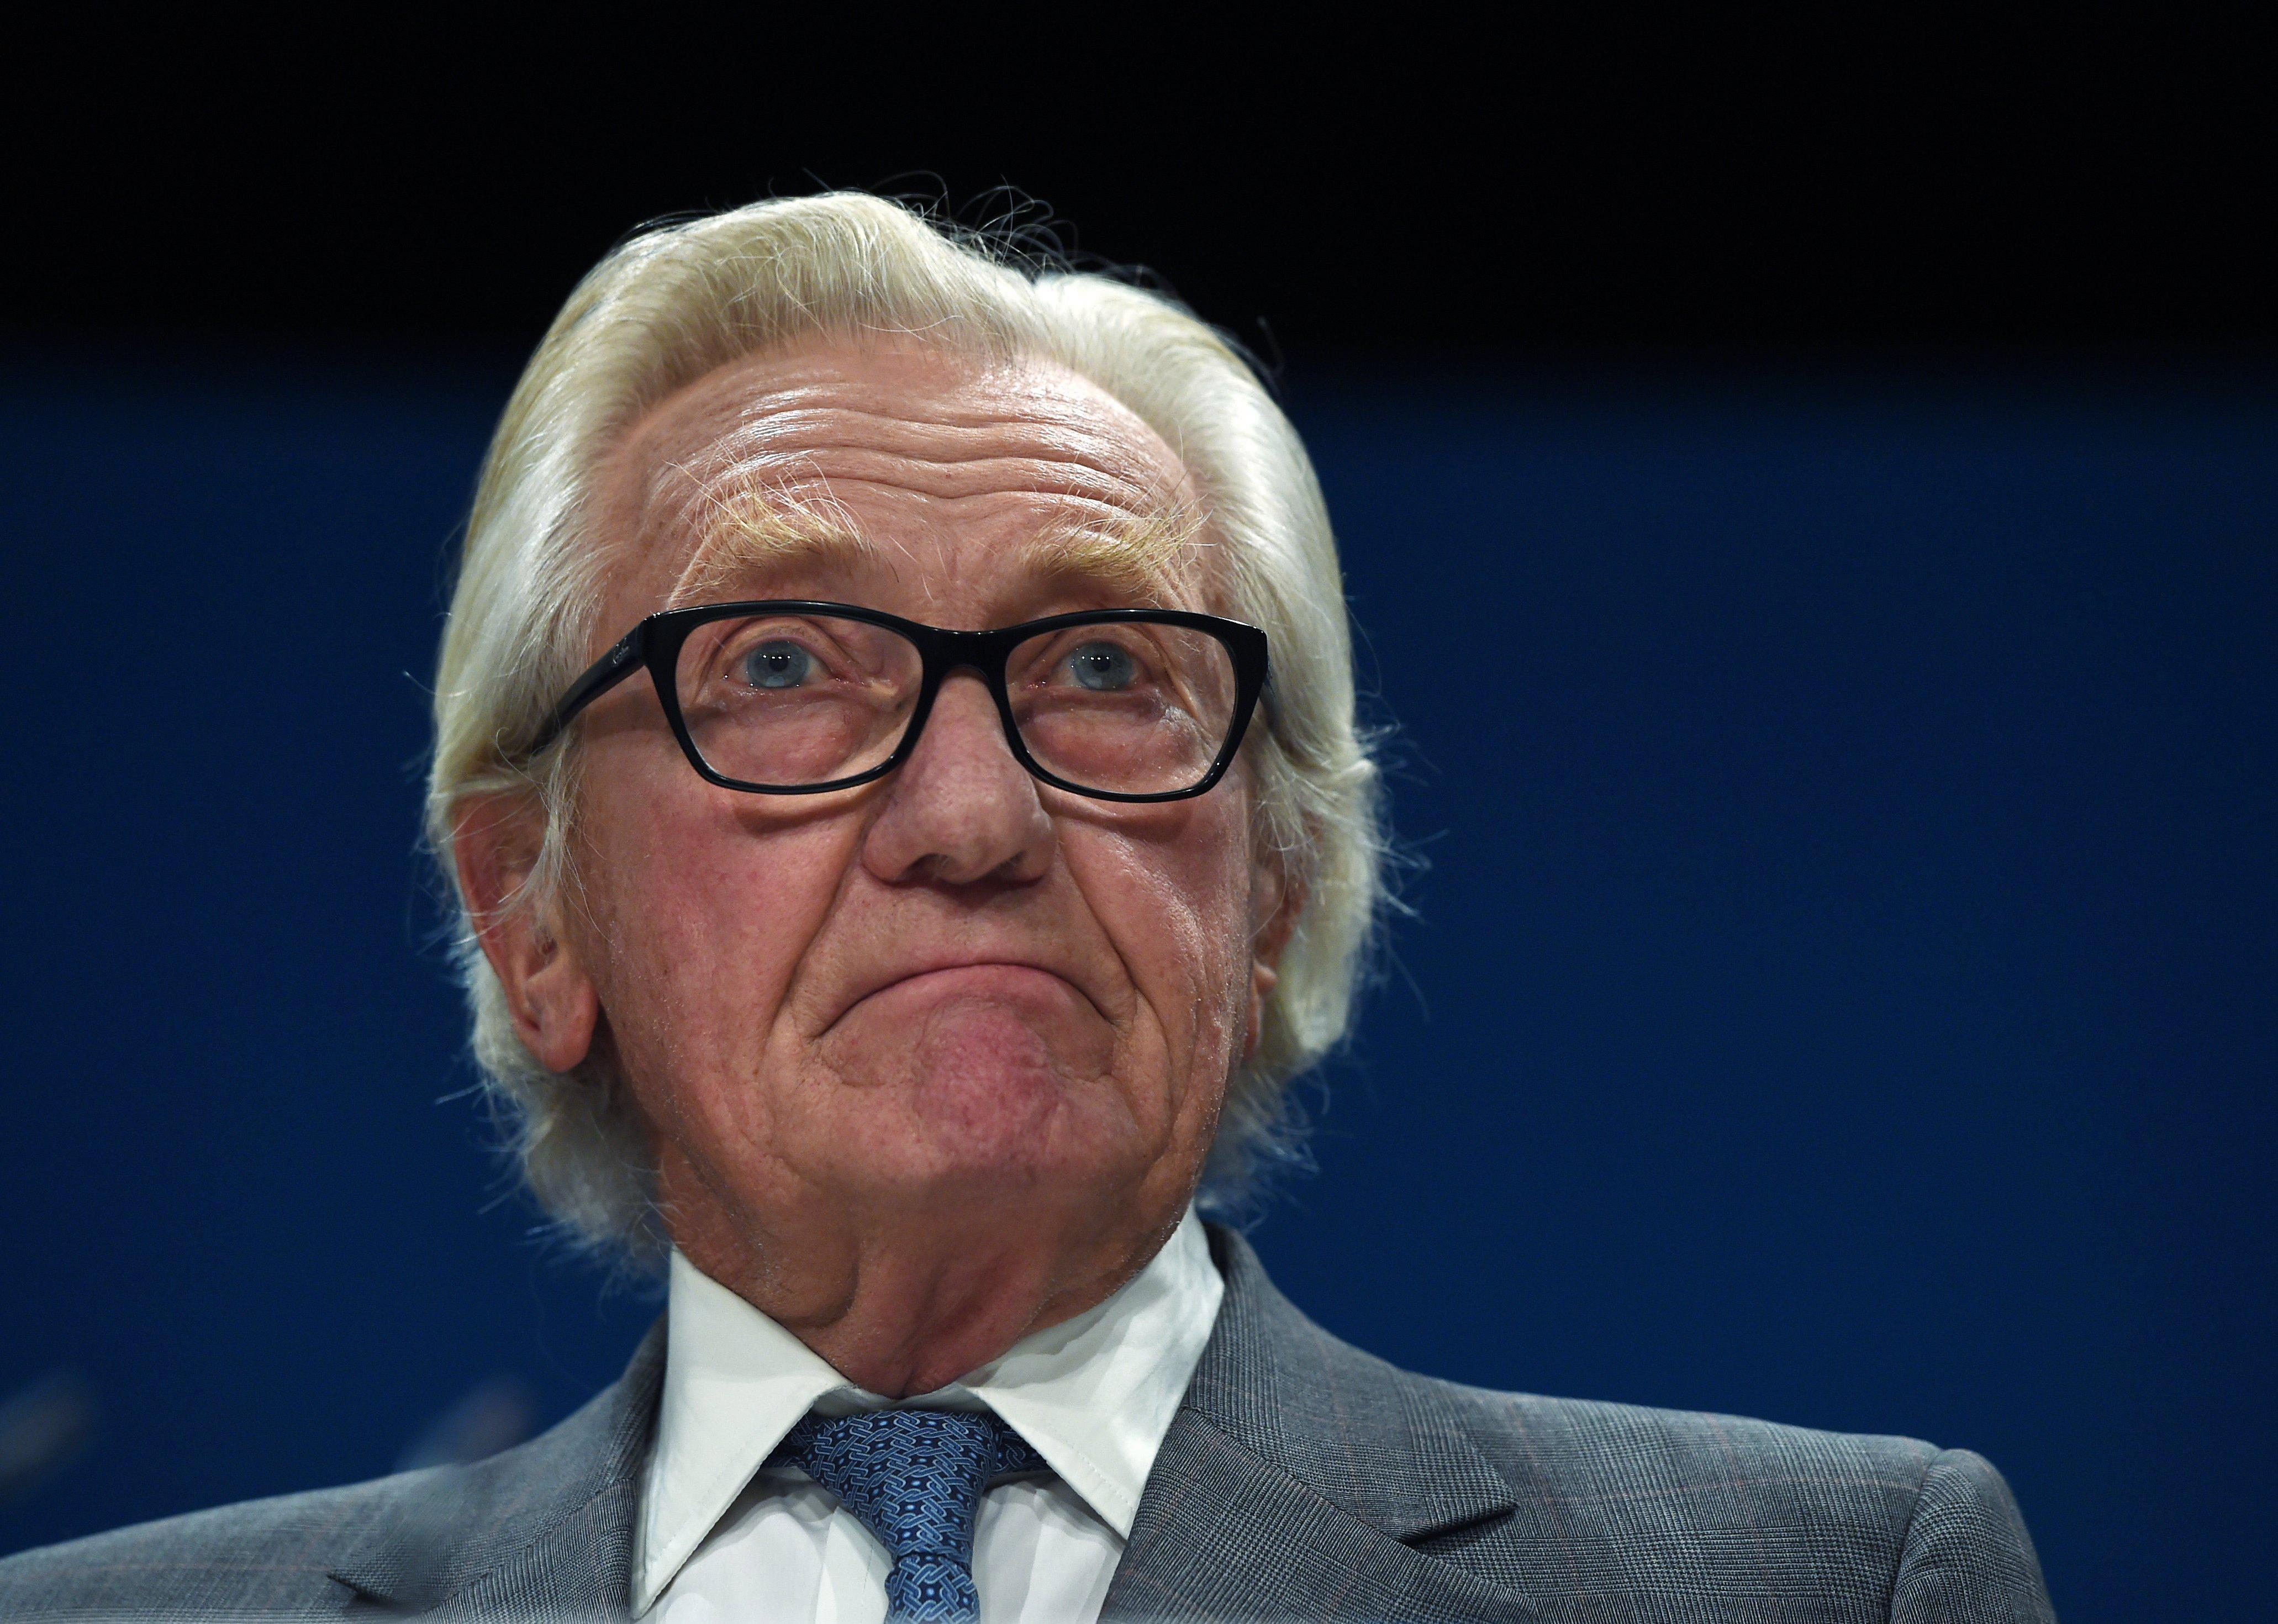 30a56ad03174ec68d95d6bd7ad6fc6cc Pressure mounts on PM to withdraw Tory whip from Lord Heseltine over 'disloyal' Brexit comments